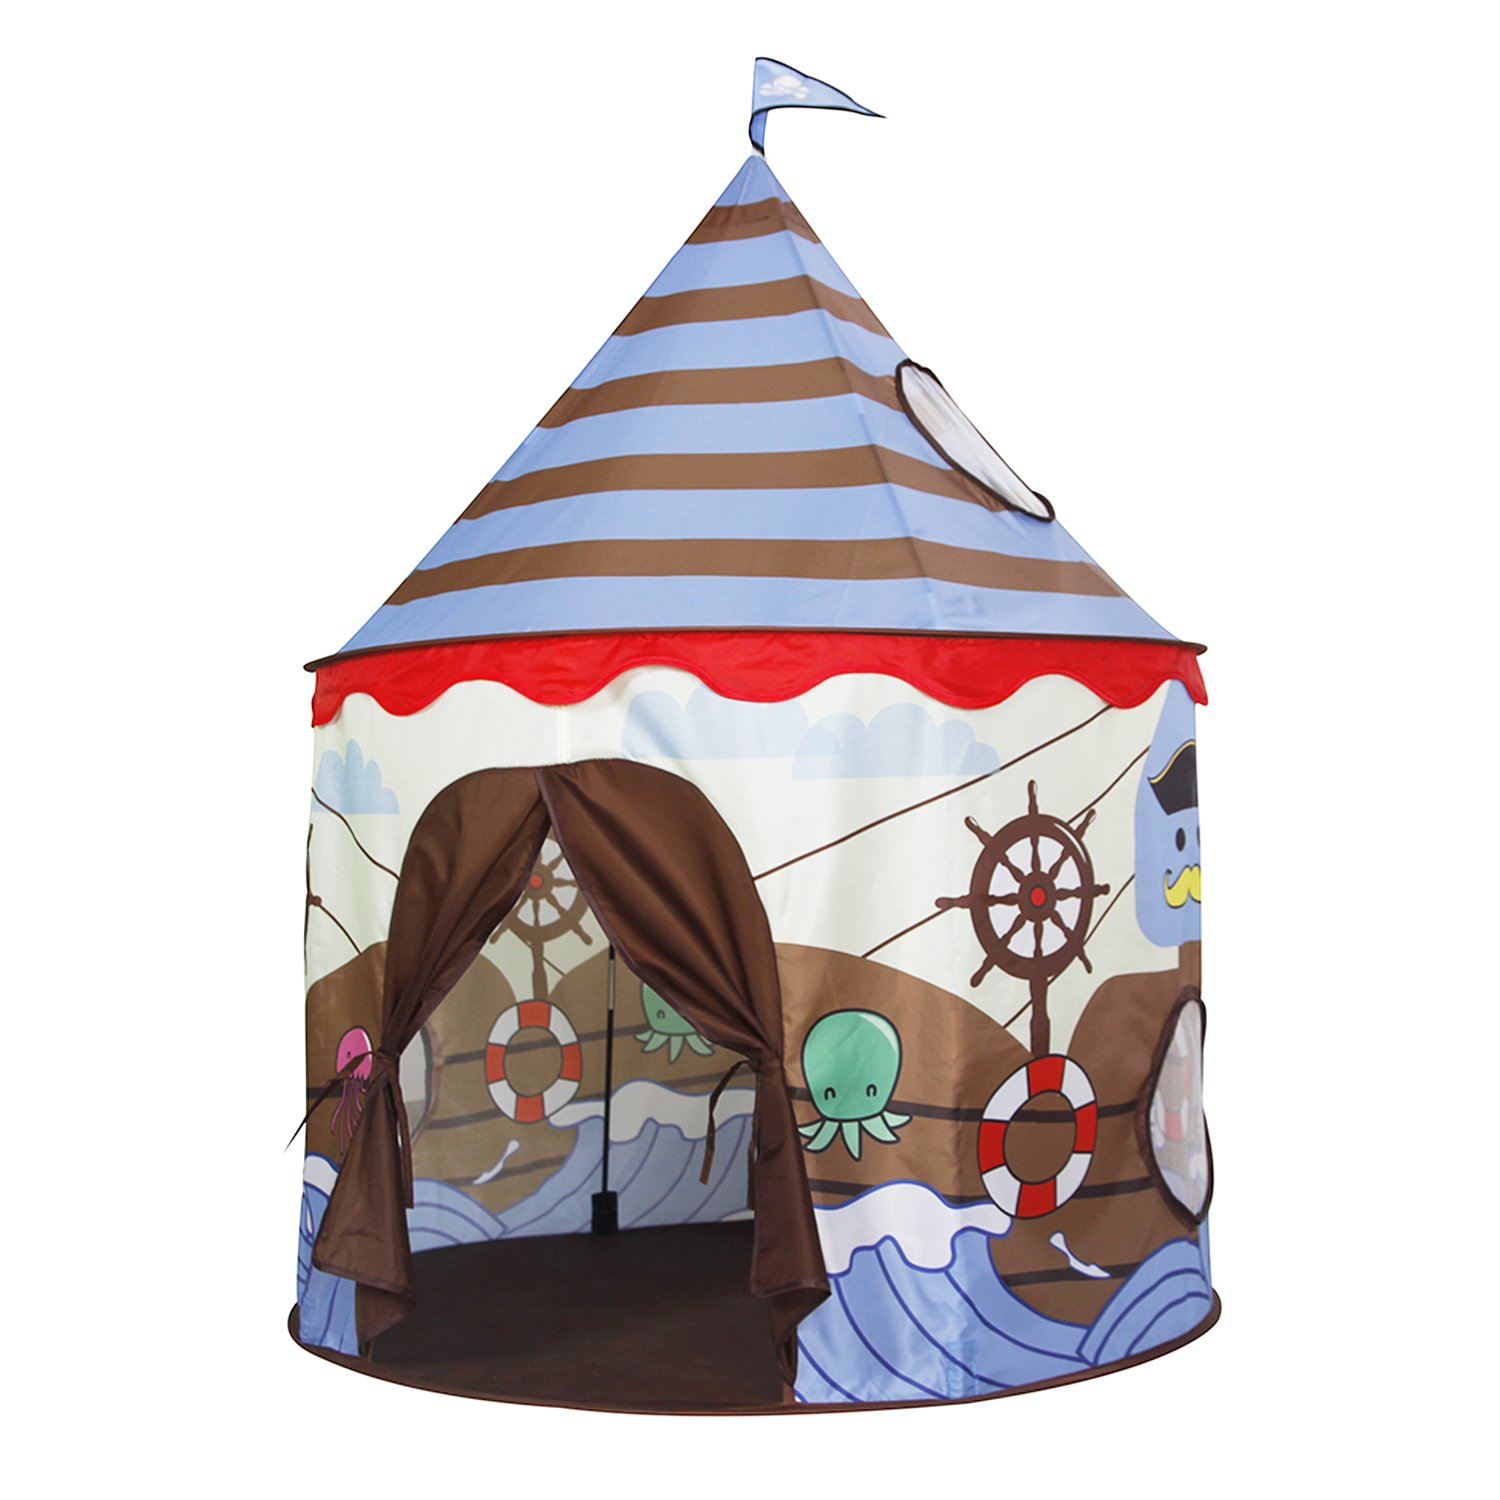 Homfu Play Tent For Kids Castle Playhouse For Children Boys Viking Pattern Popup Tent  sc 1 st  Amazon.com : cheap childrens tents - memphite.com